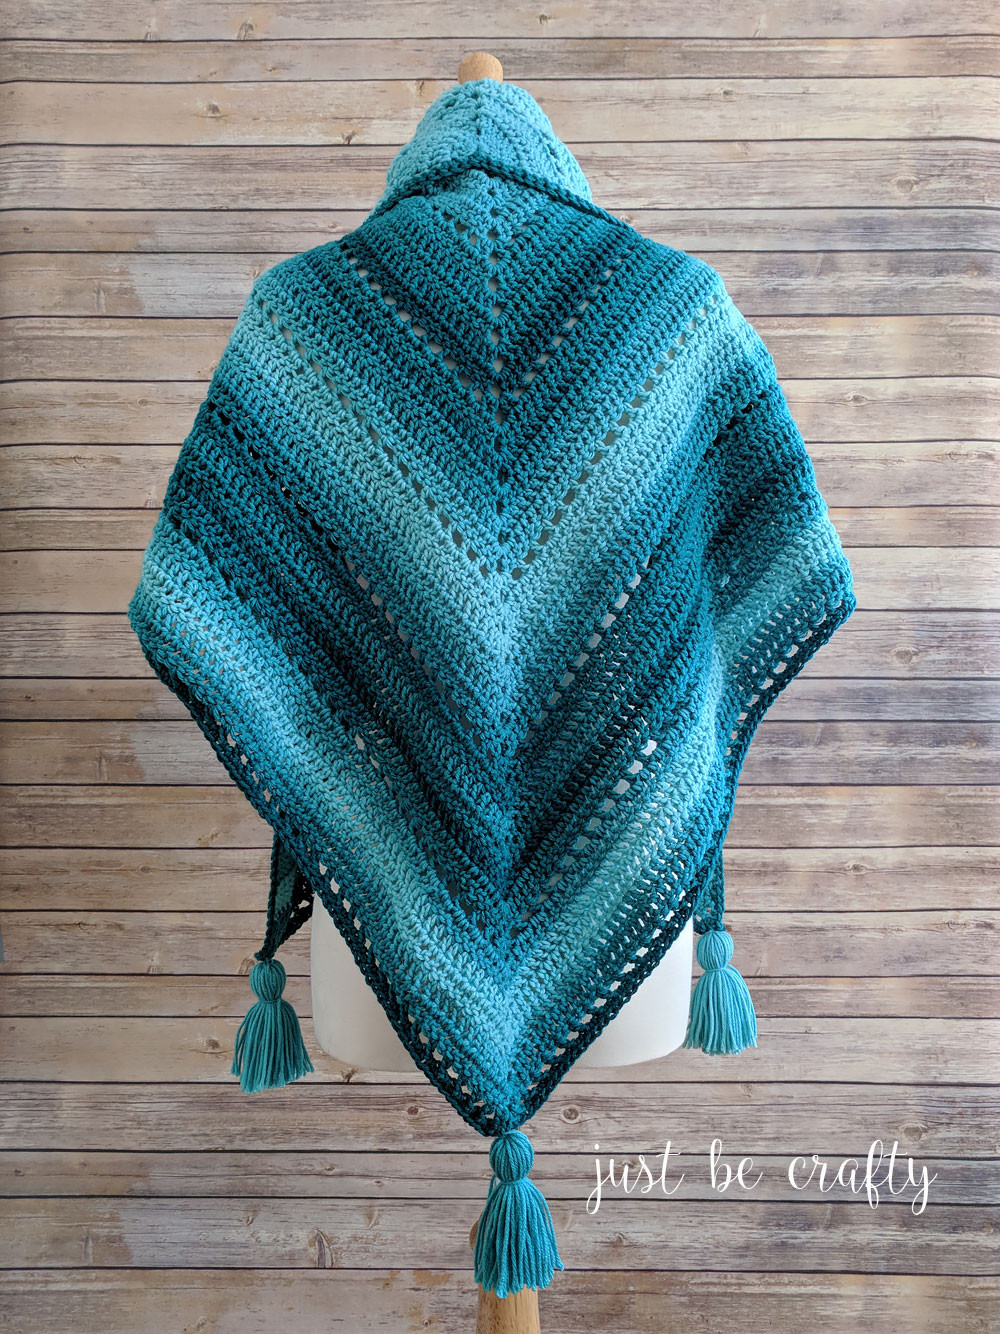 Crochet Triangle Shawl Best Of Crochet Triangle Shawl Pattern Free Crochet Pattern by Of Brilliant 46 Pictures Crochet Triangle Shawl